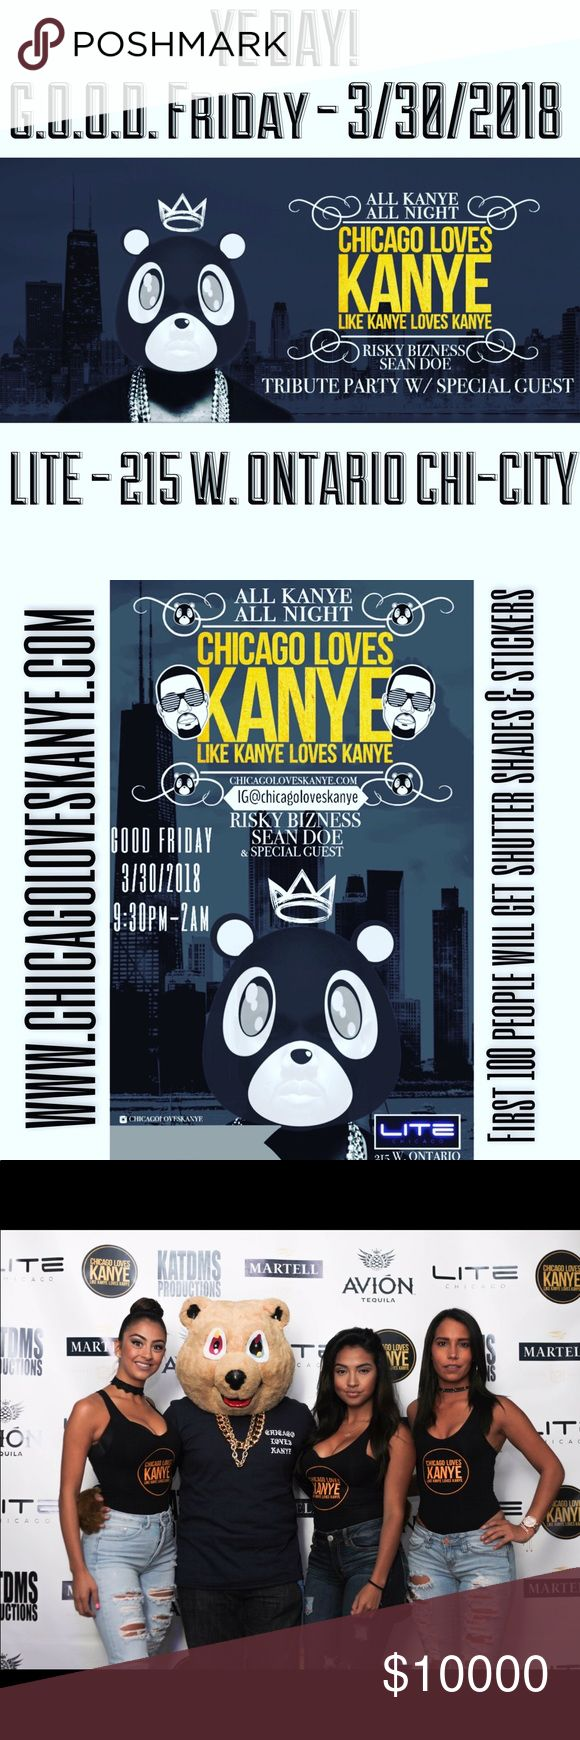 Chicago! Ye Day! all Kanye All night! 3/30/2018 Calling all Yeezy fans! Second annual chicago Loves Kanye Tribute Party Friday 3/30/2018! All Kanye All night, video mixing, giveaways, performances and more! Check out my IG for more info @chicagoloveskanye Yeezy Shoes Sneakers